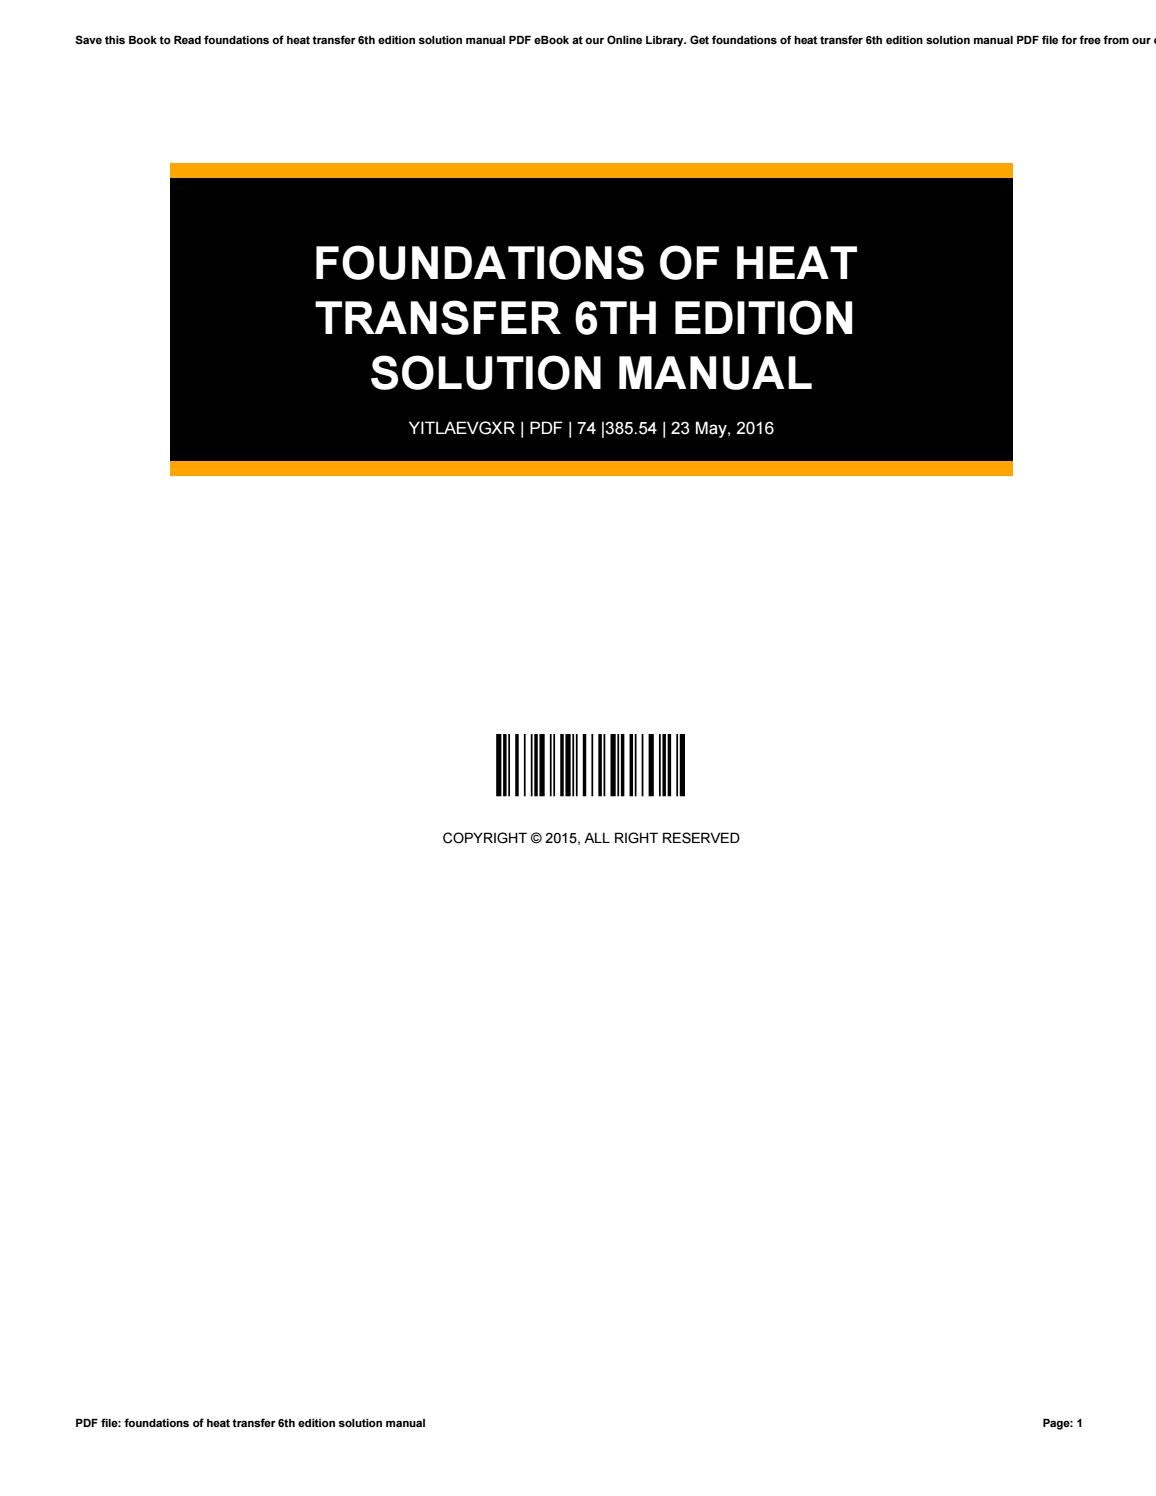 Foundations of heat transfer 6th edition solution manual by gremo98modol -  issuu